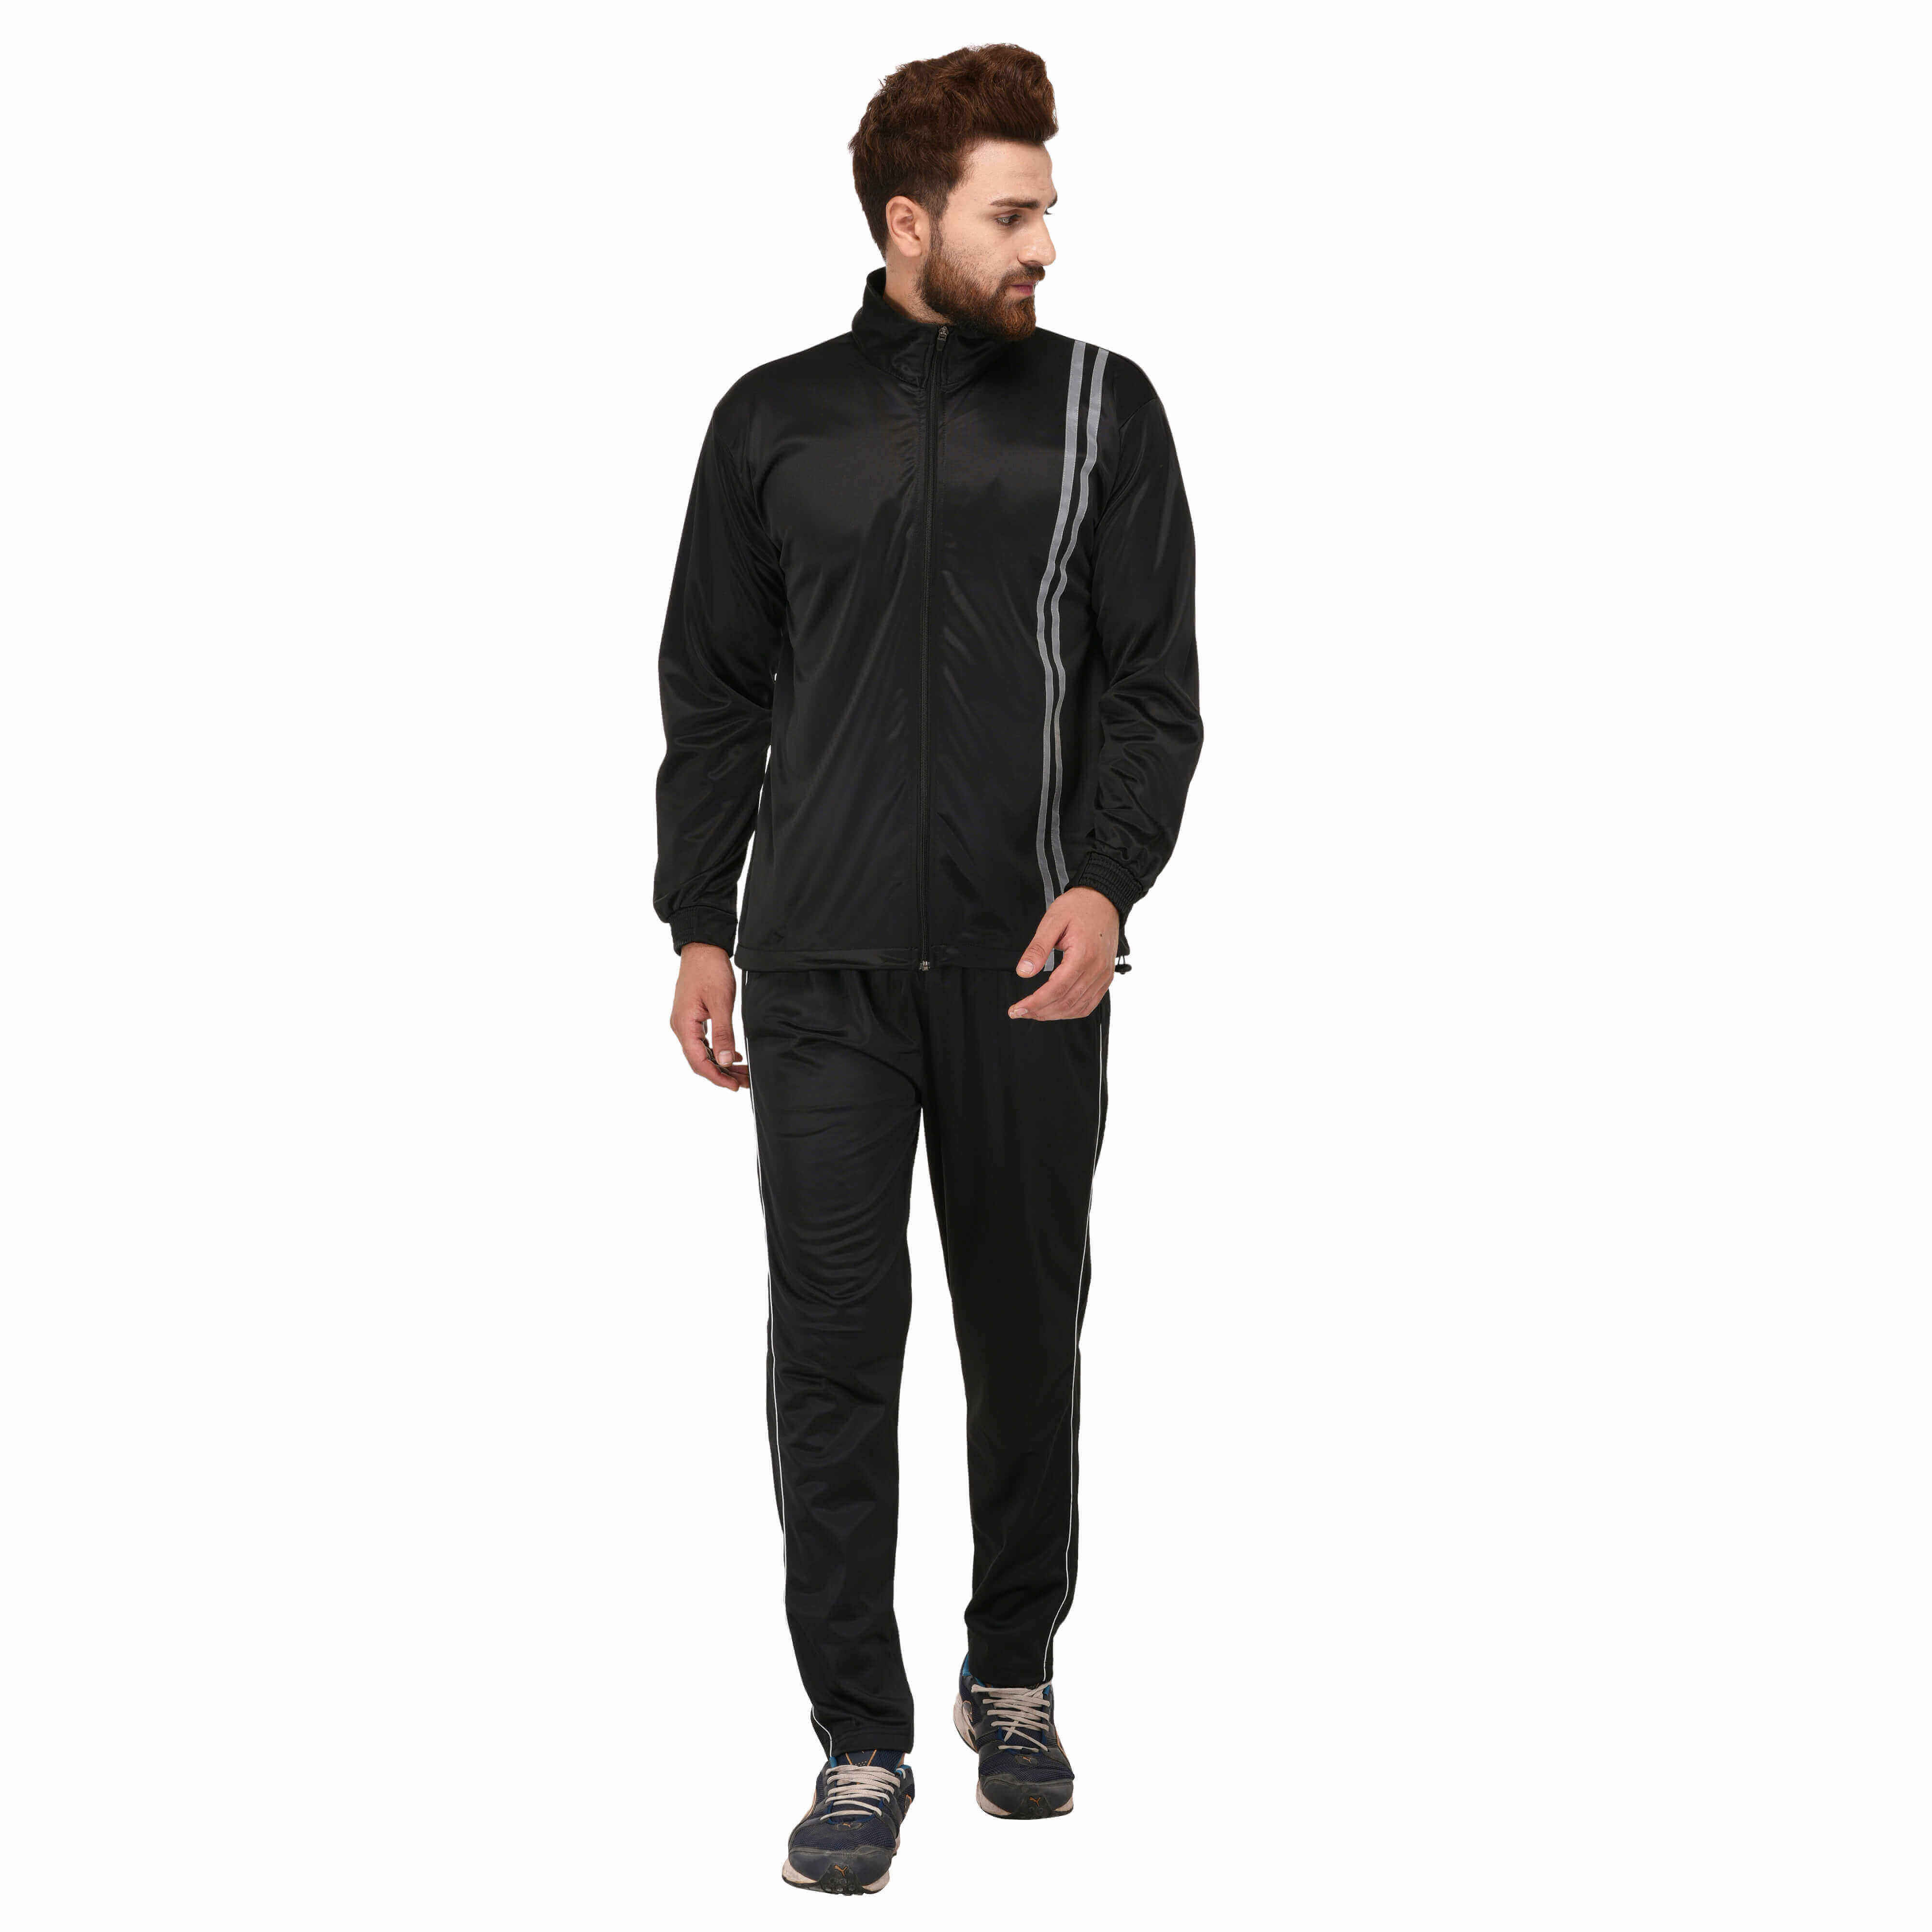 Mens Tracksuit Set Manufacturers in Nanded